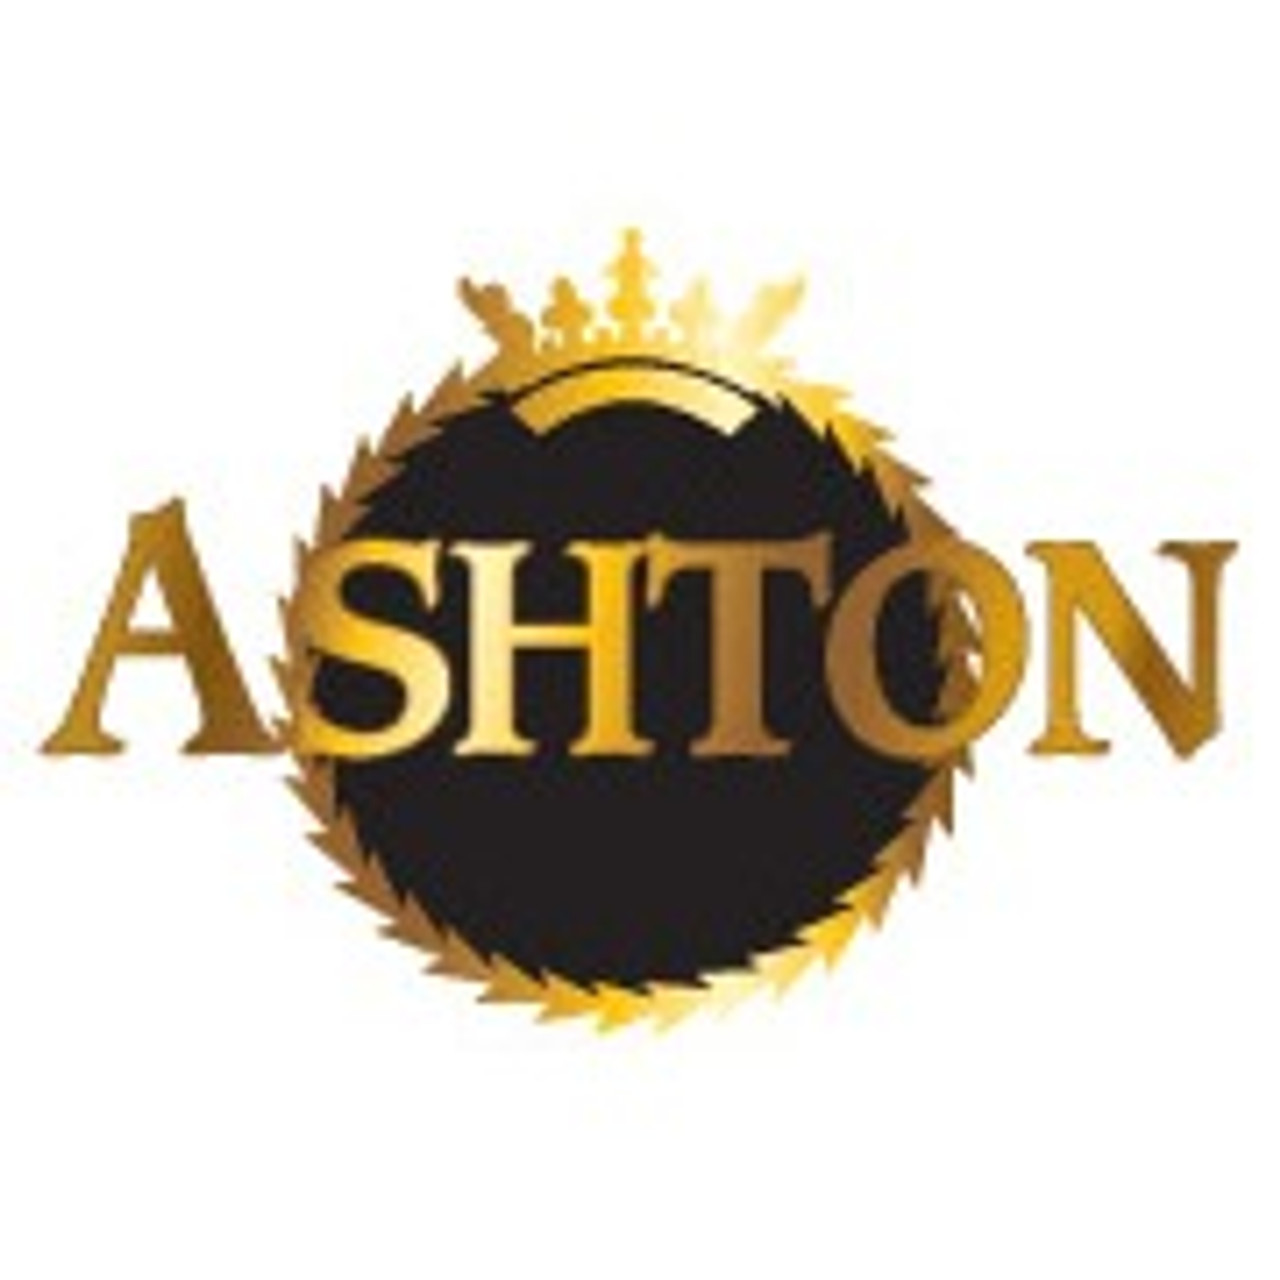 Ashton 8-9-8 - 6 1/2 x 44 Cigars (Cedar Chest of 25)